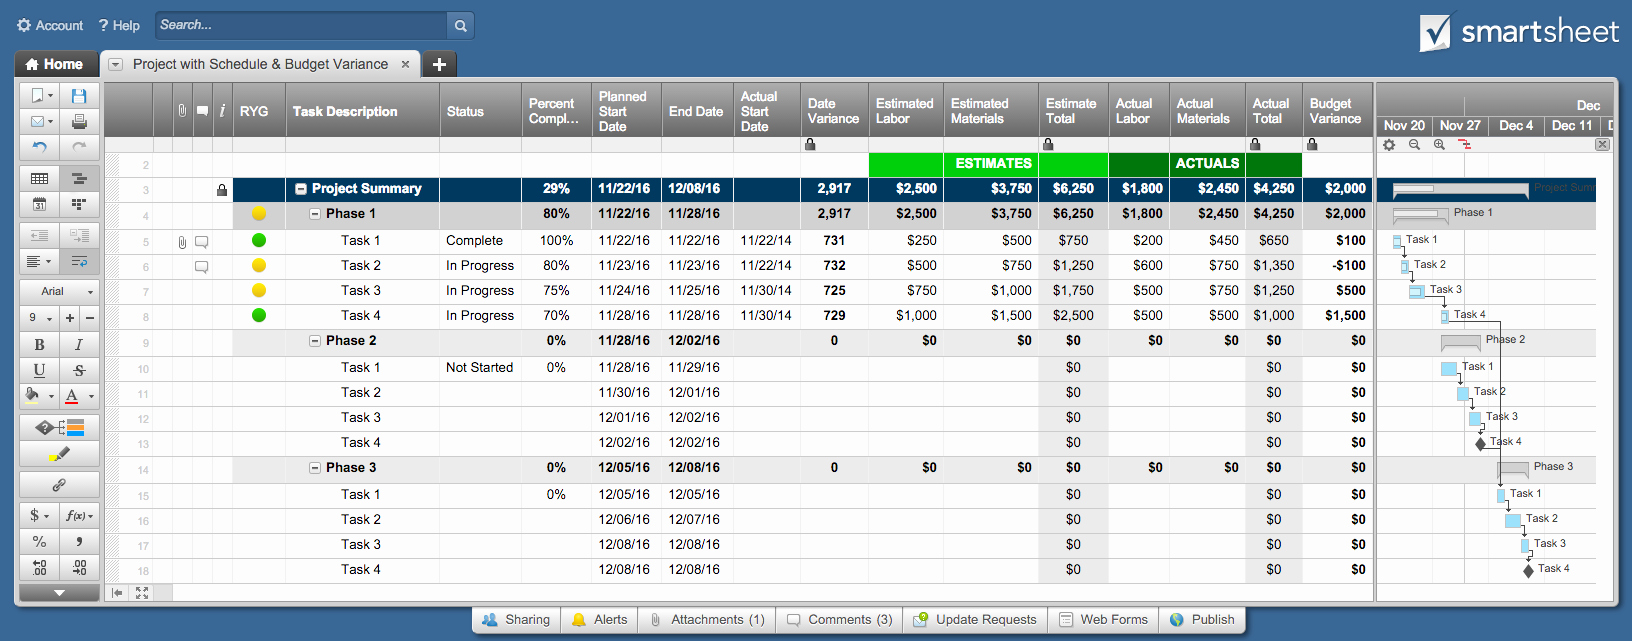 Project Contact List Template Excel Awesome Free Excel Project Management Templates